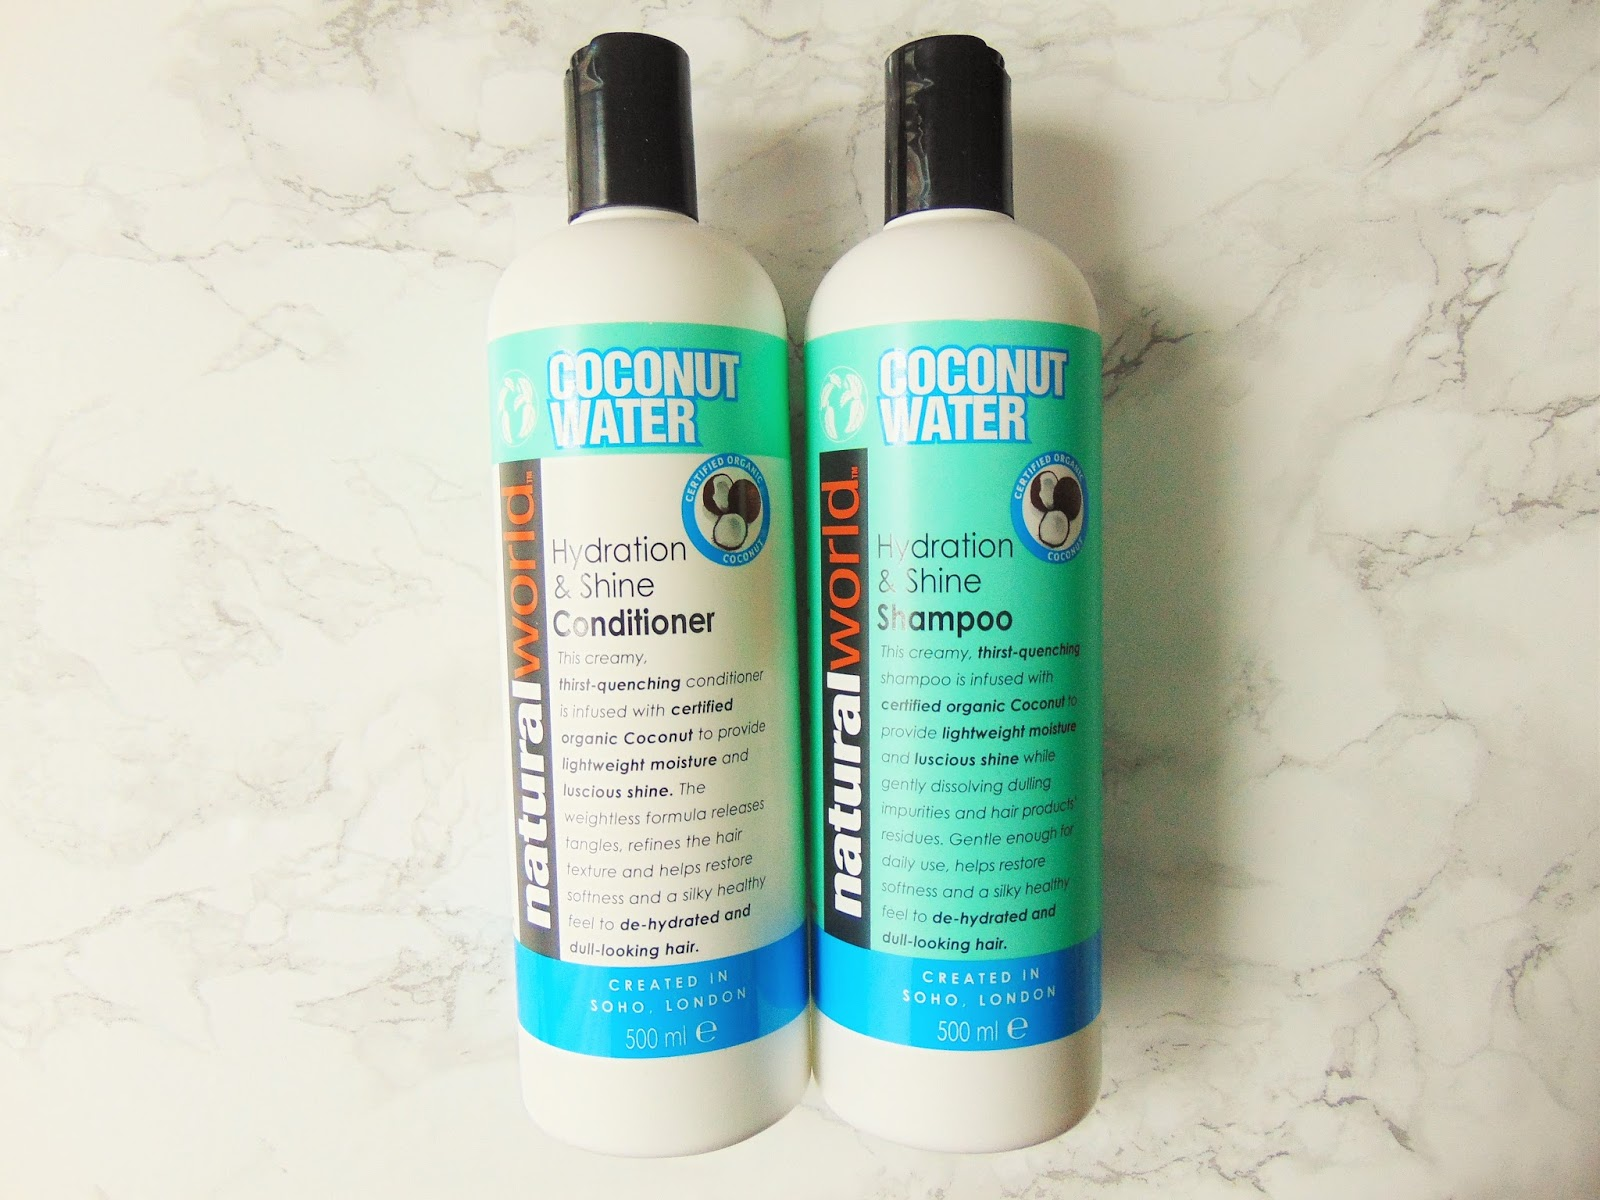 Natural Water Coconut Water Shampoo